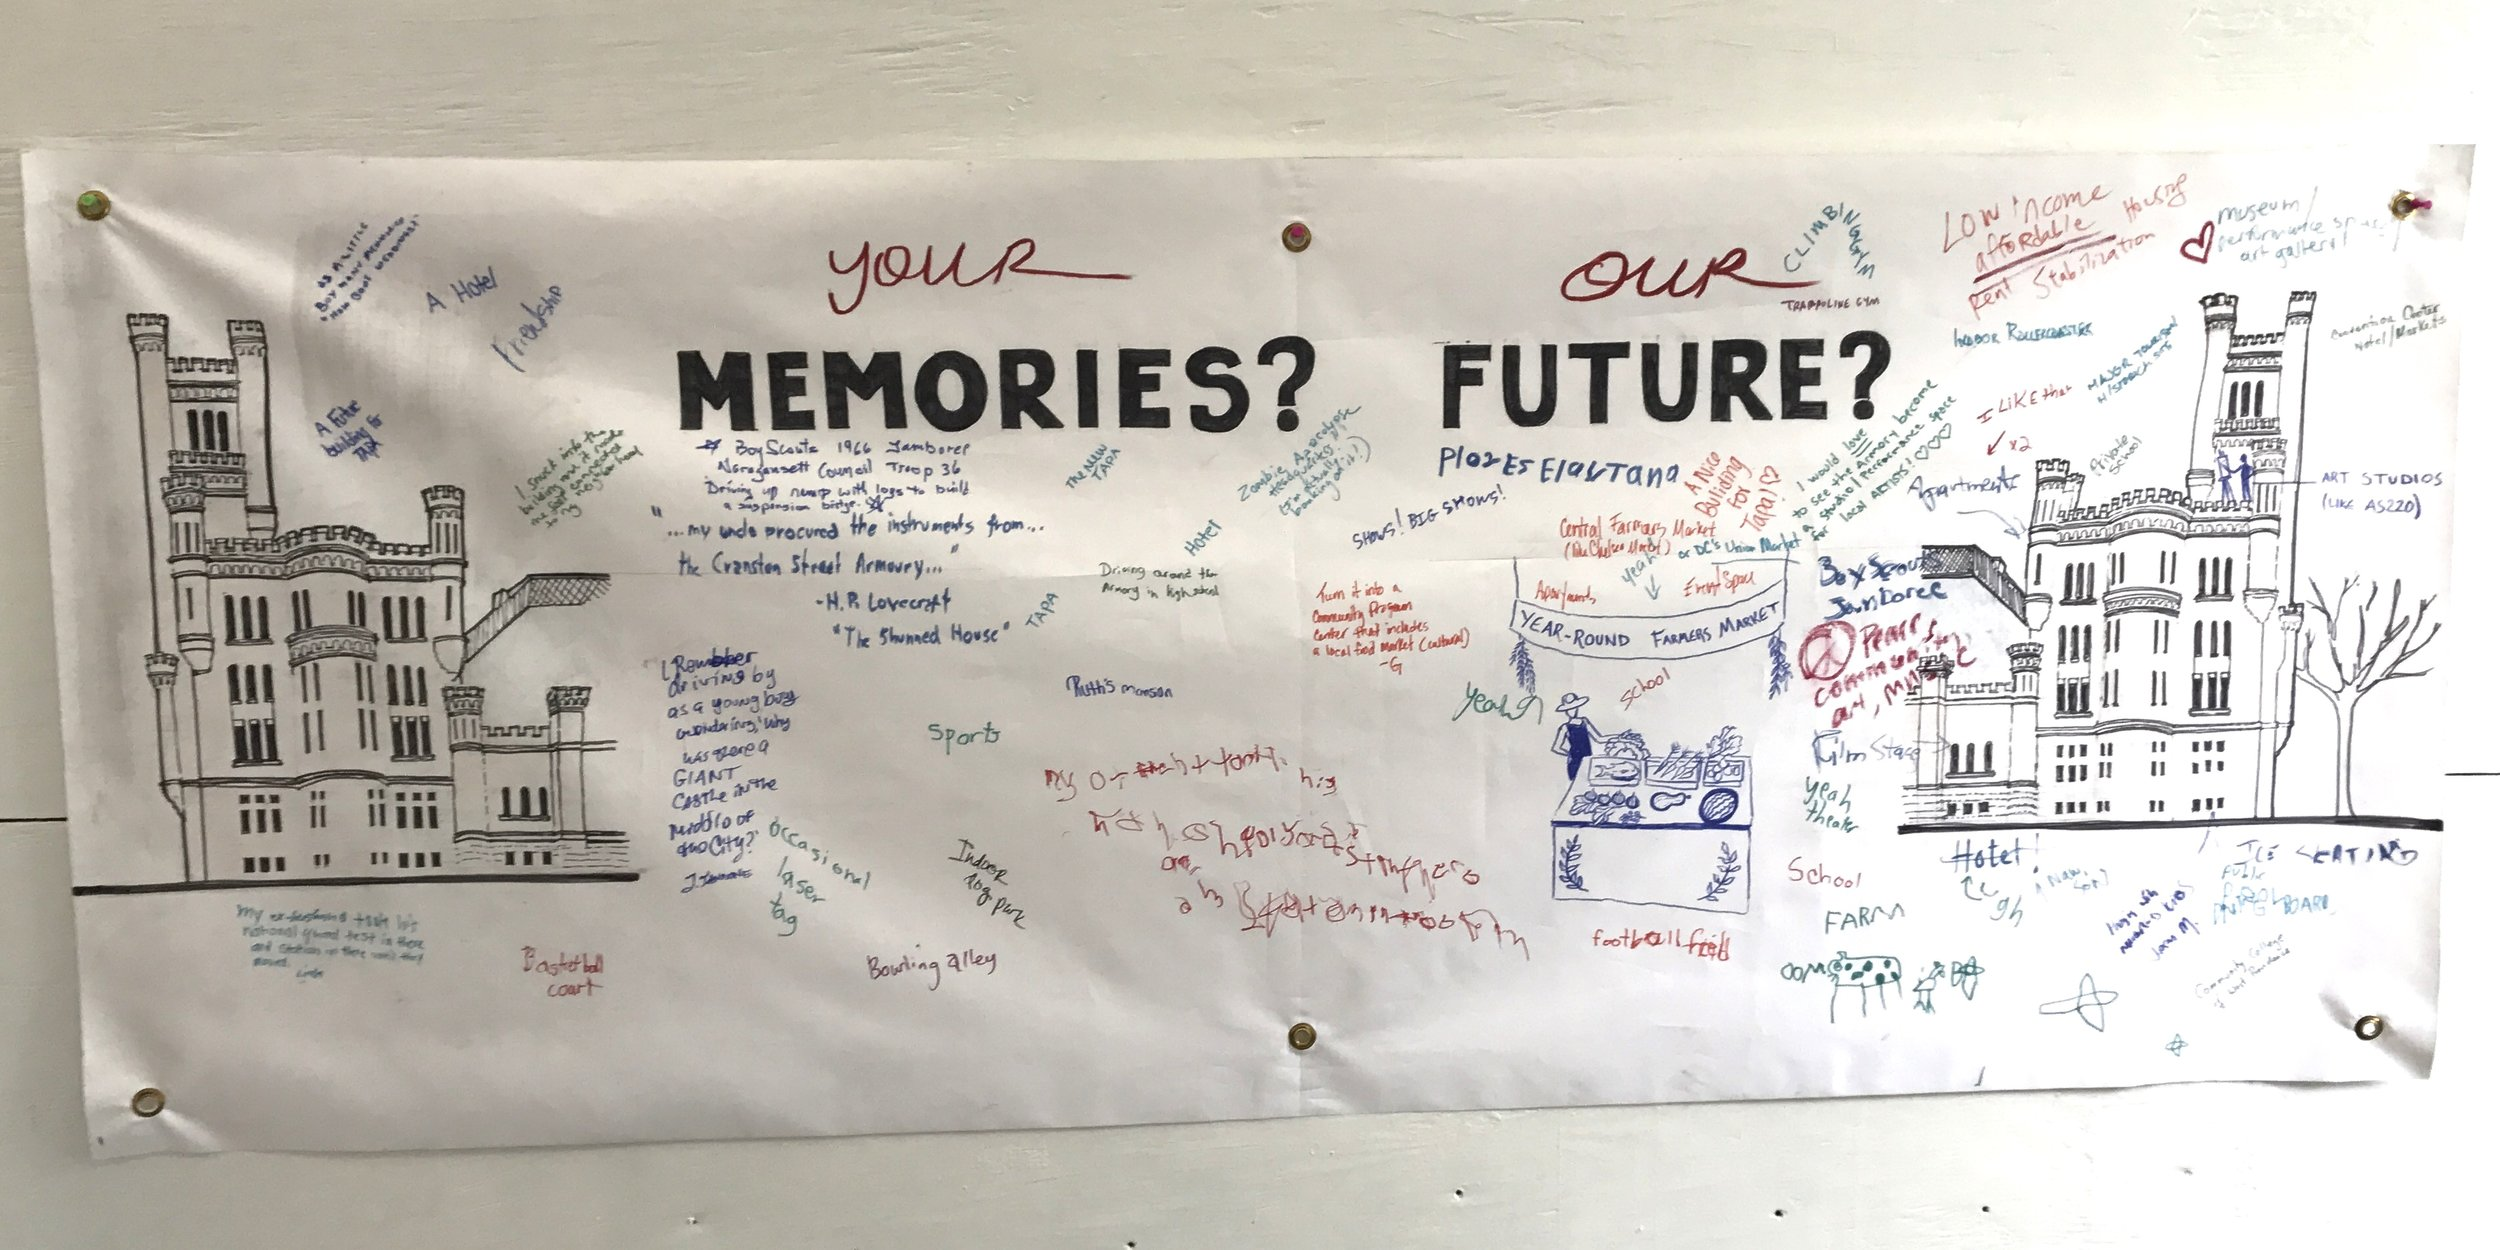 Interactive Banner capturing memories and future hopes for the Armory